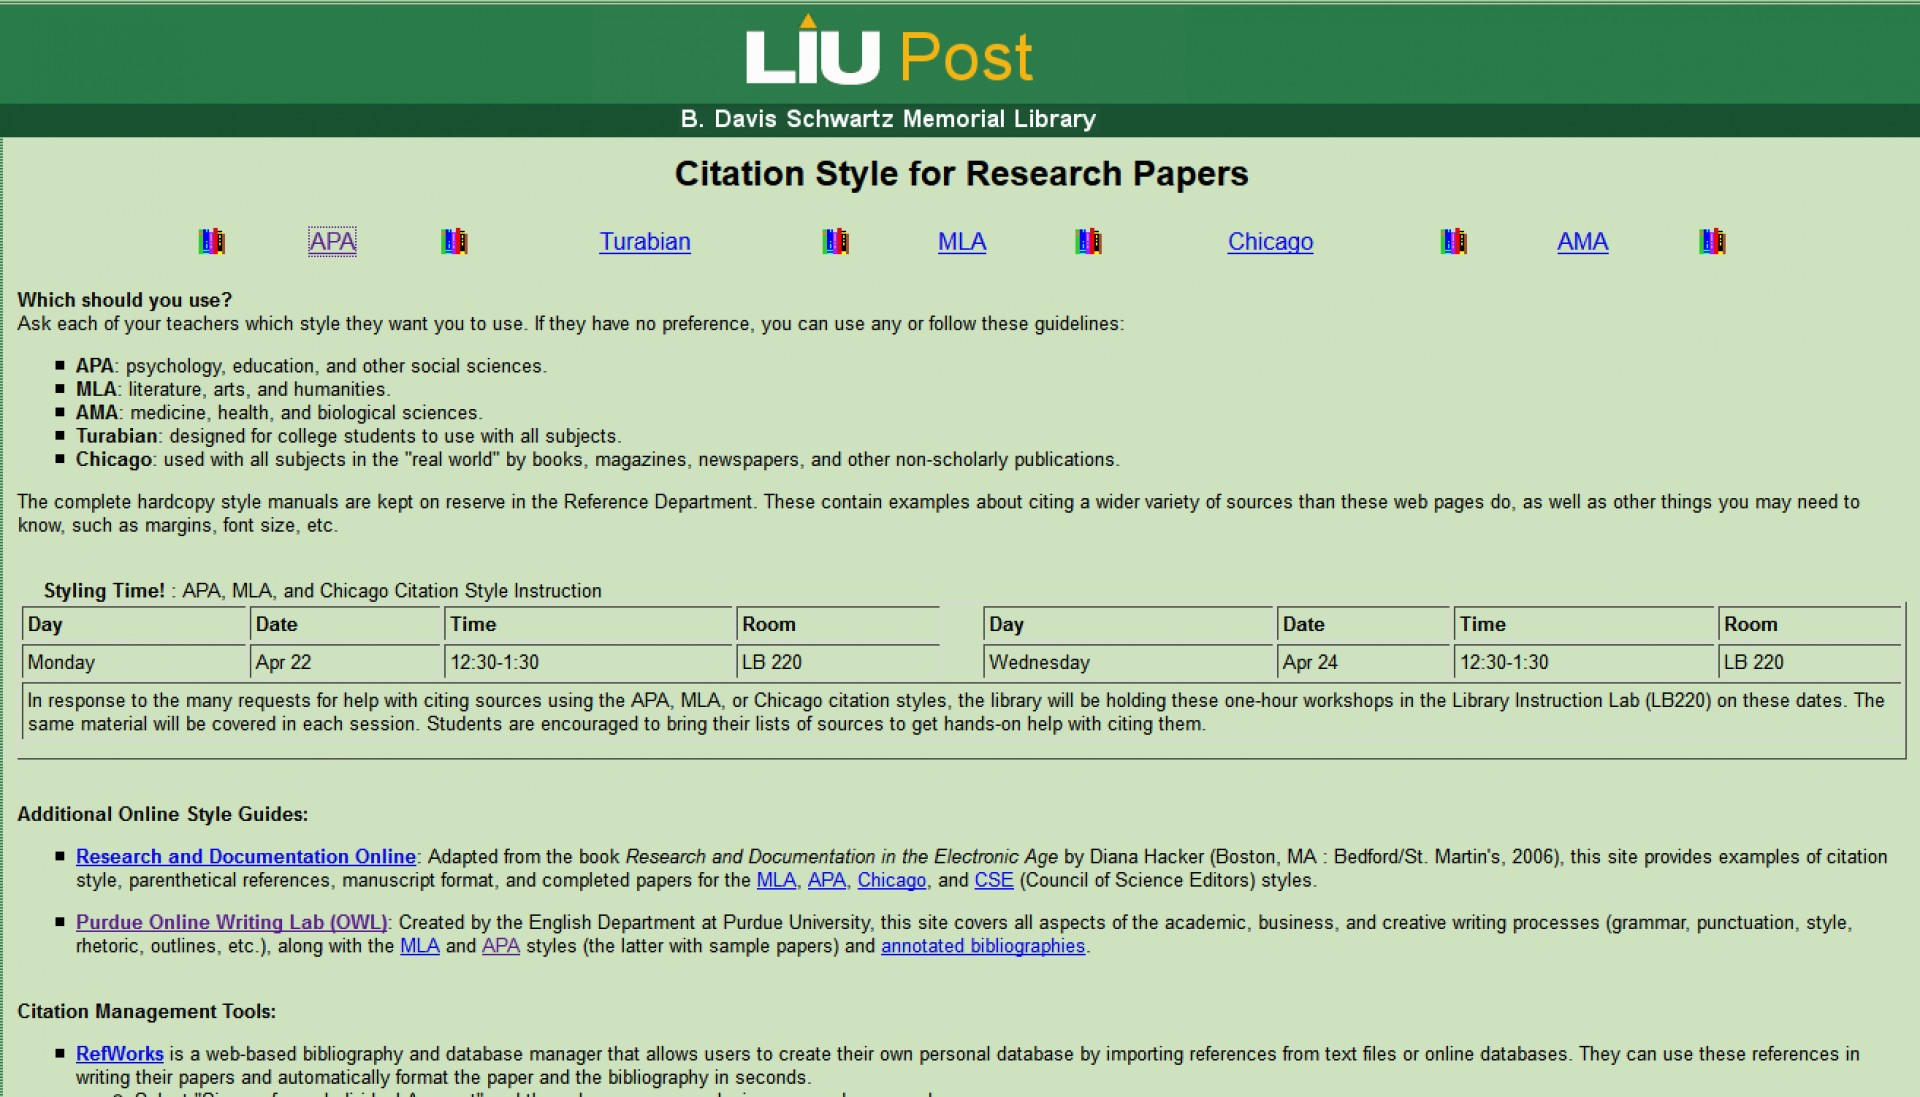 001 Liu Homepage Research Paper Long Island University Citation Style For Archaicawful Papers 1920